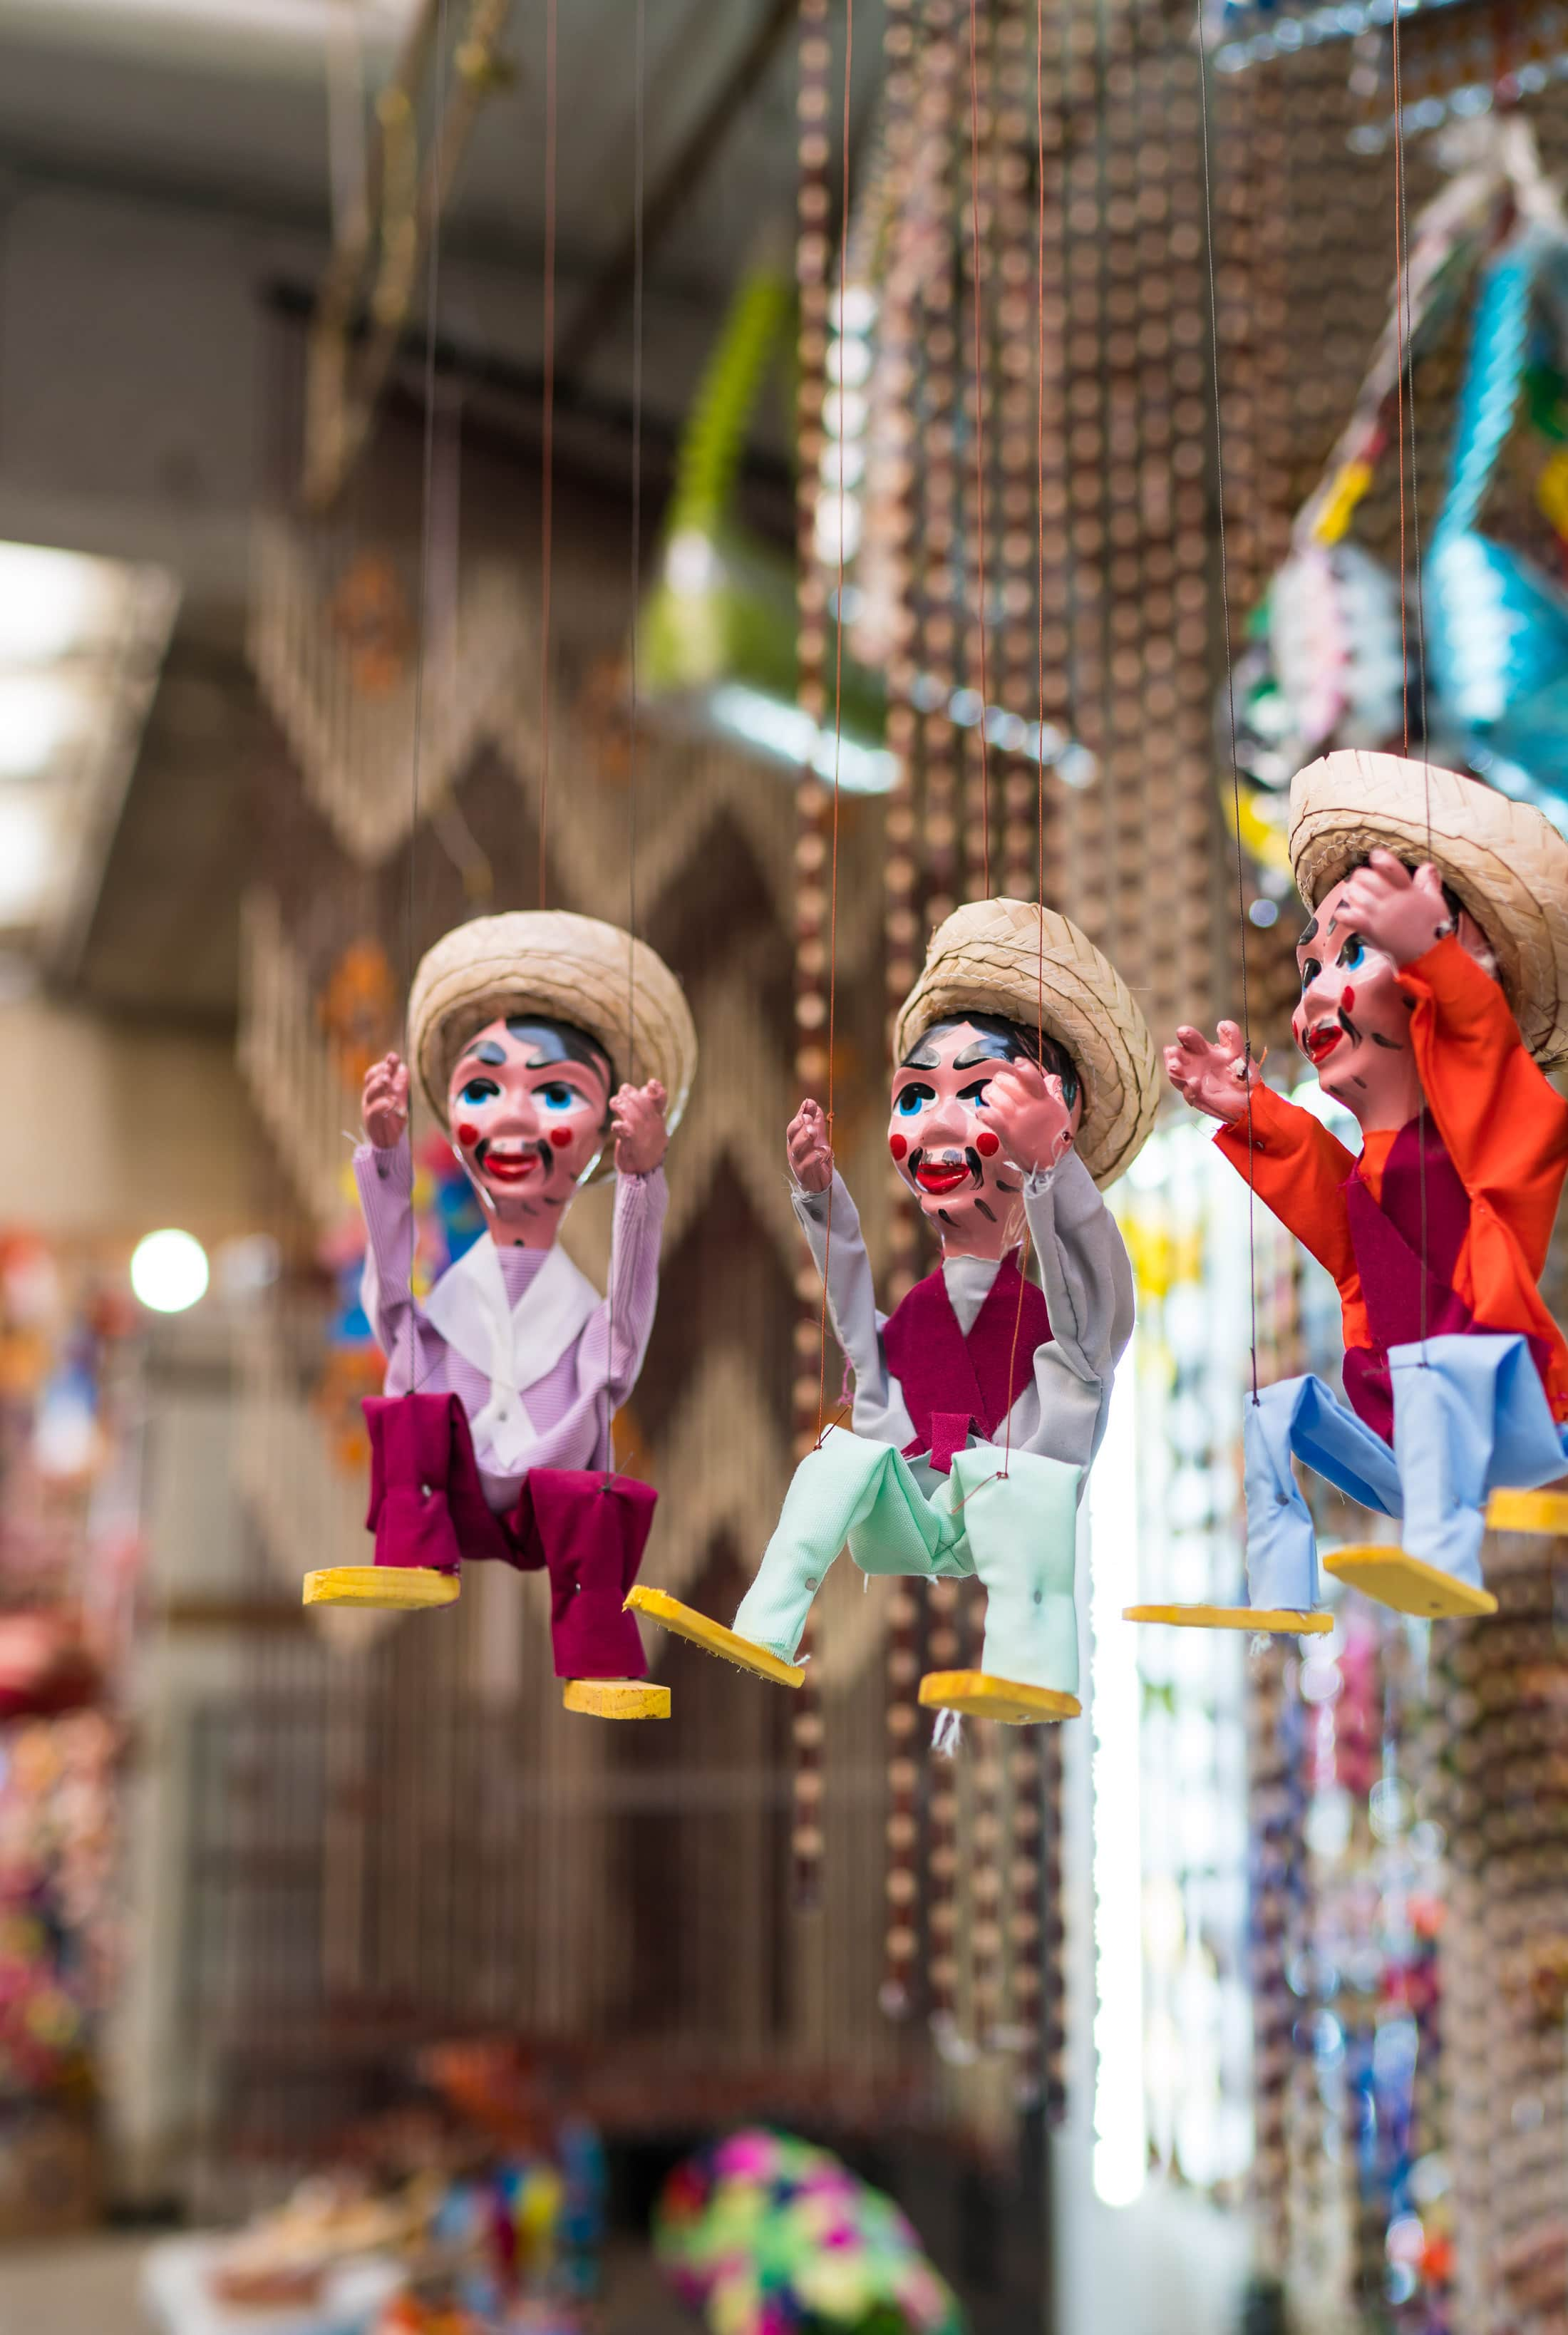 Marionettes at La Ciudadela Market in Mexico City